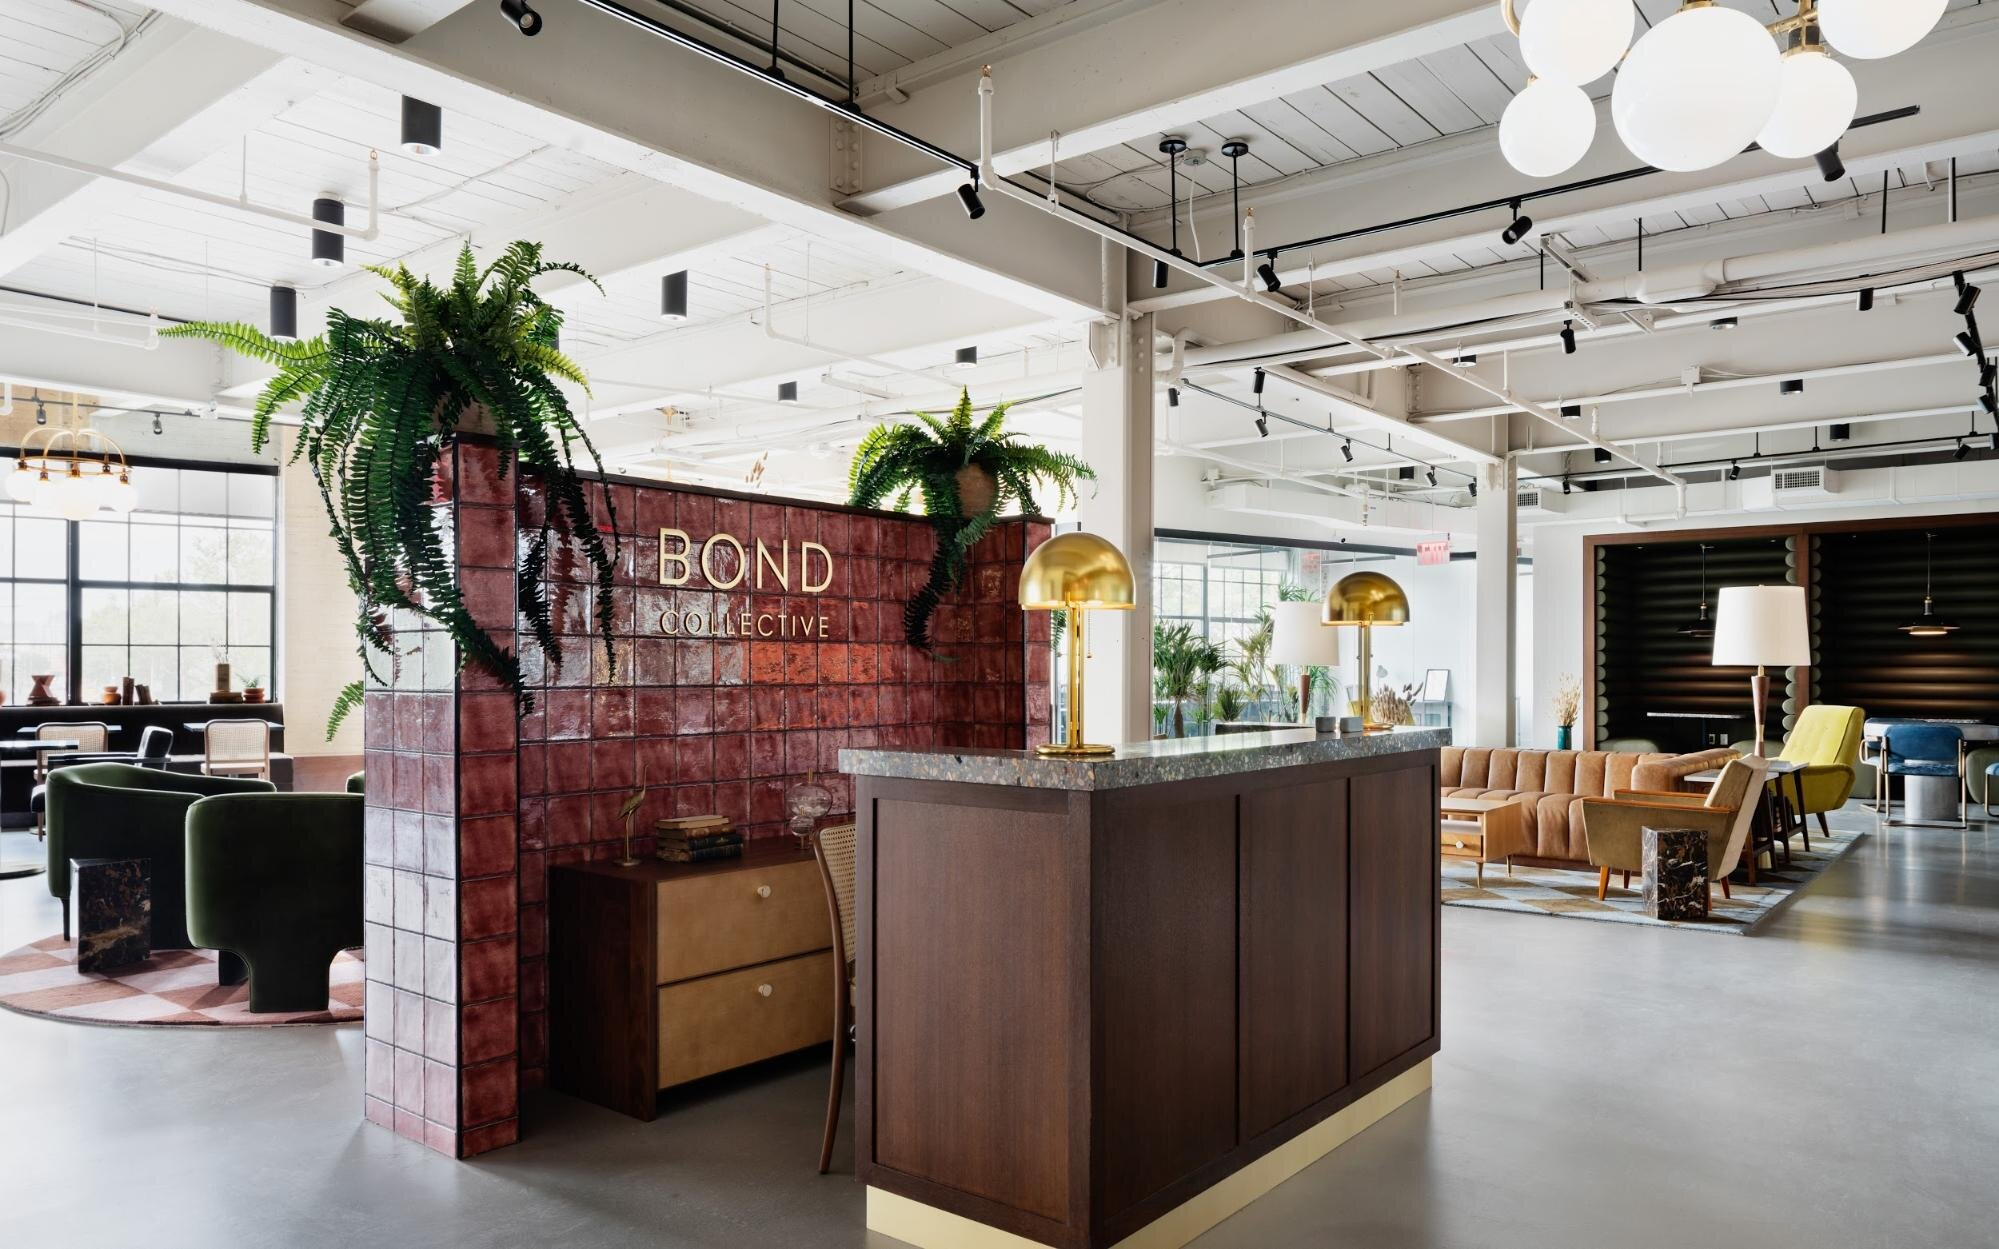 Bond collective flexible office space with lots of natural light